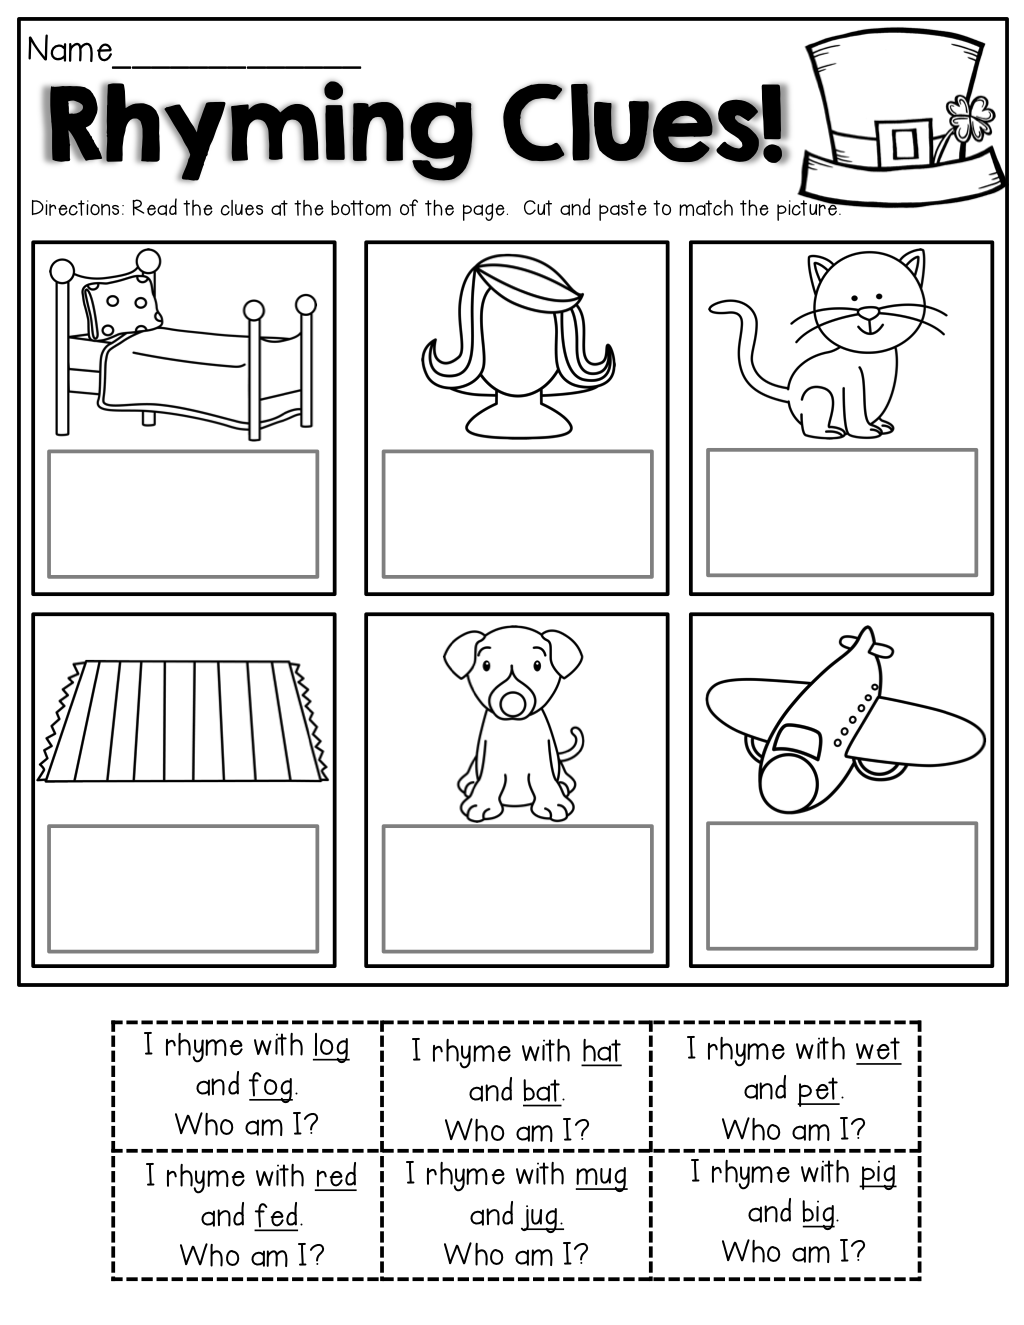 Rhyming Clues Read The Simple Sentences Clues And Cut And